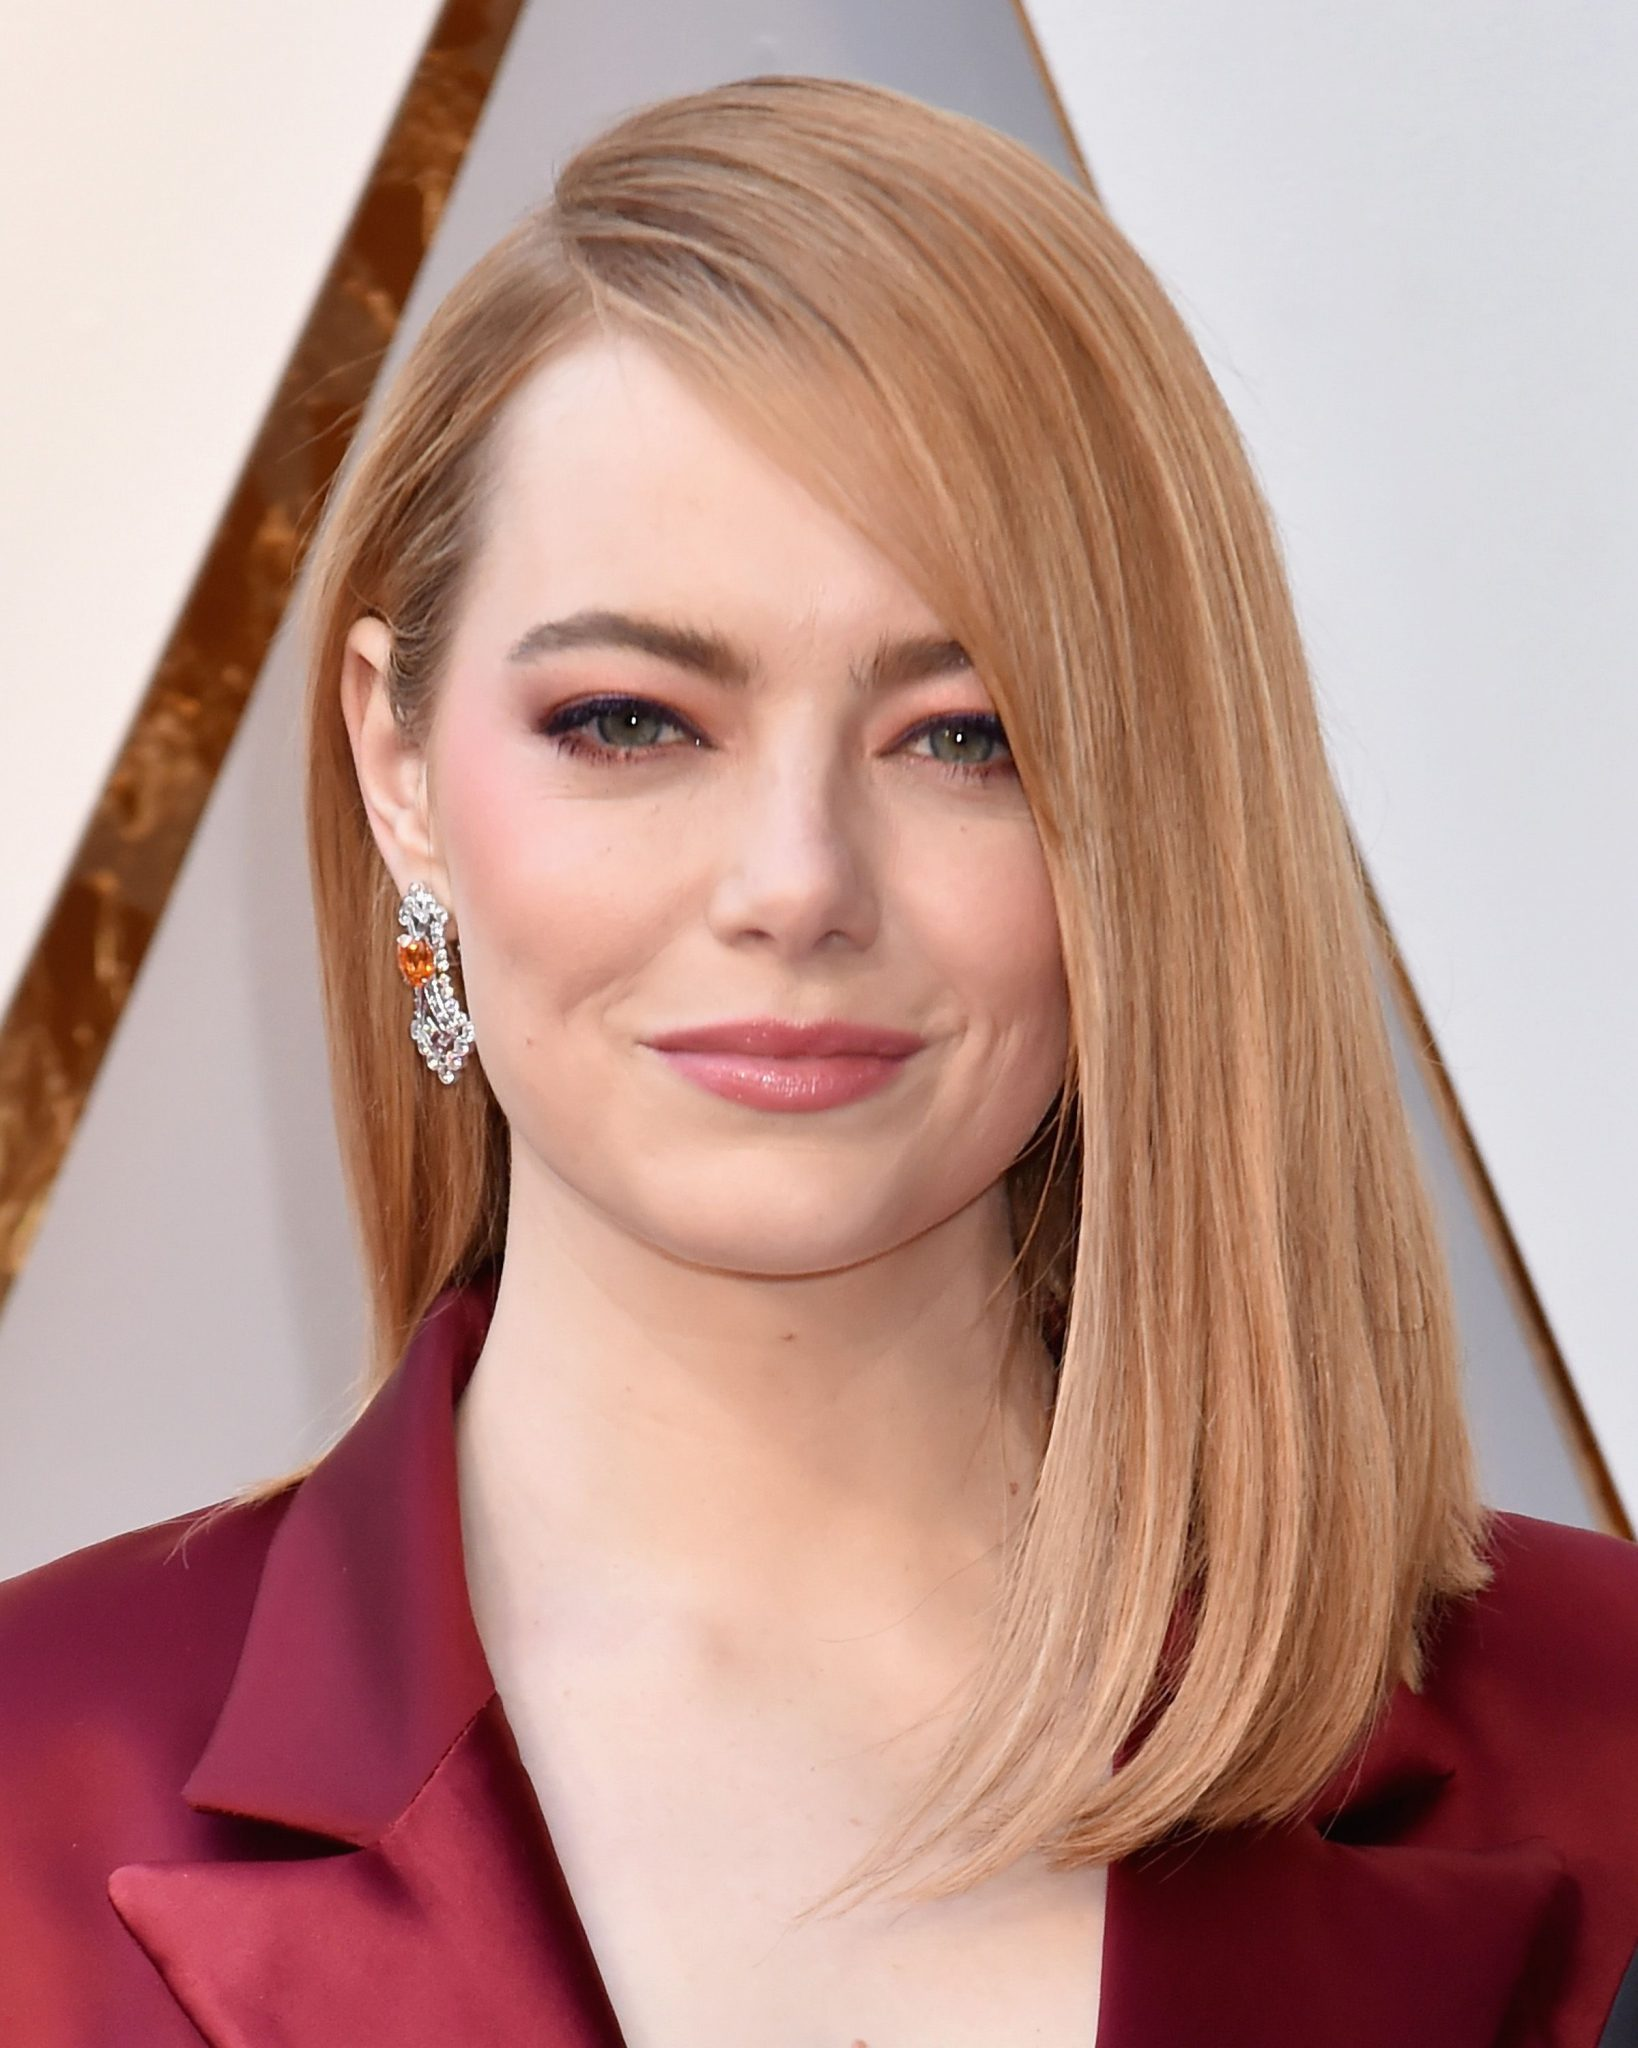 Emma stone mejores actrices del momento